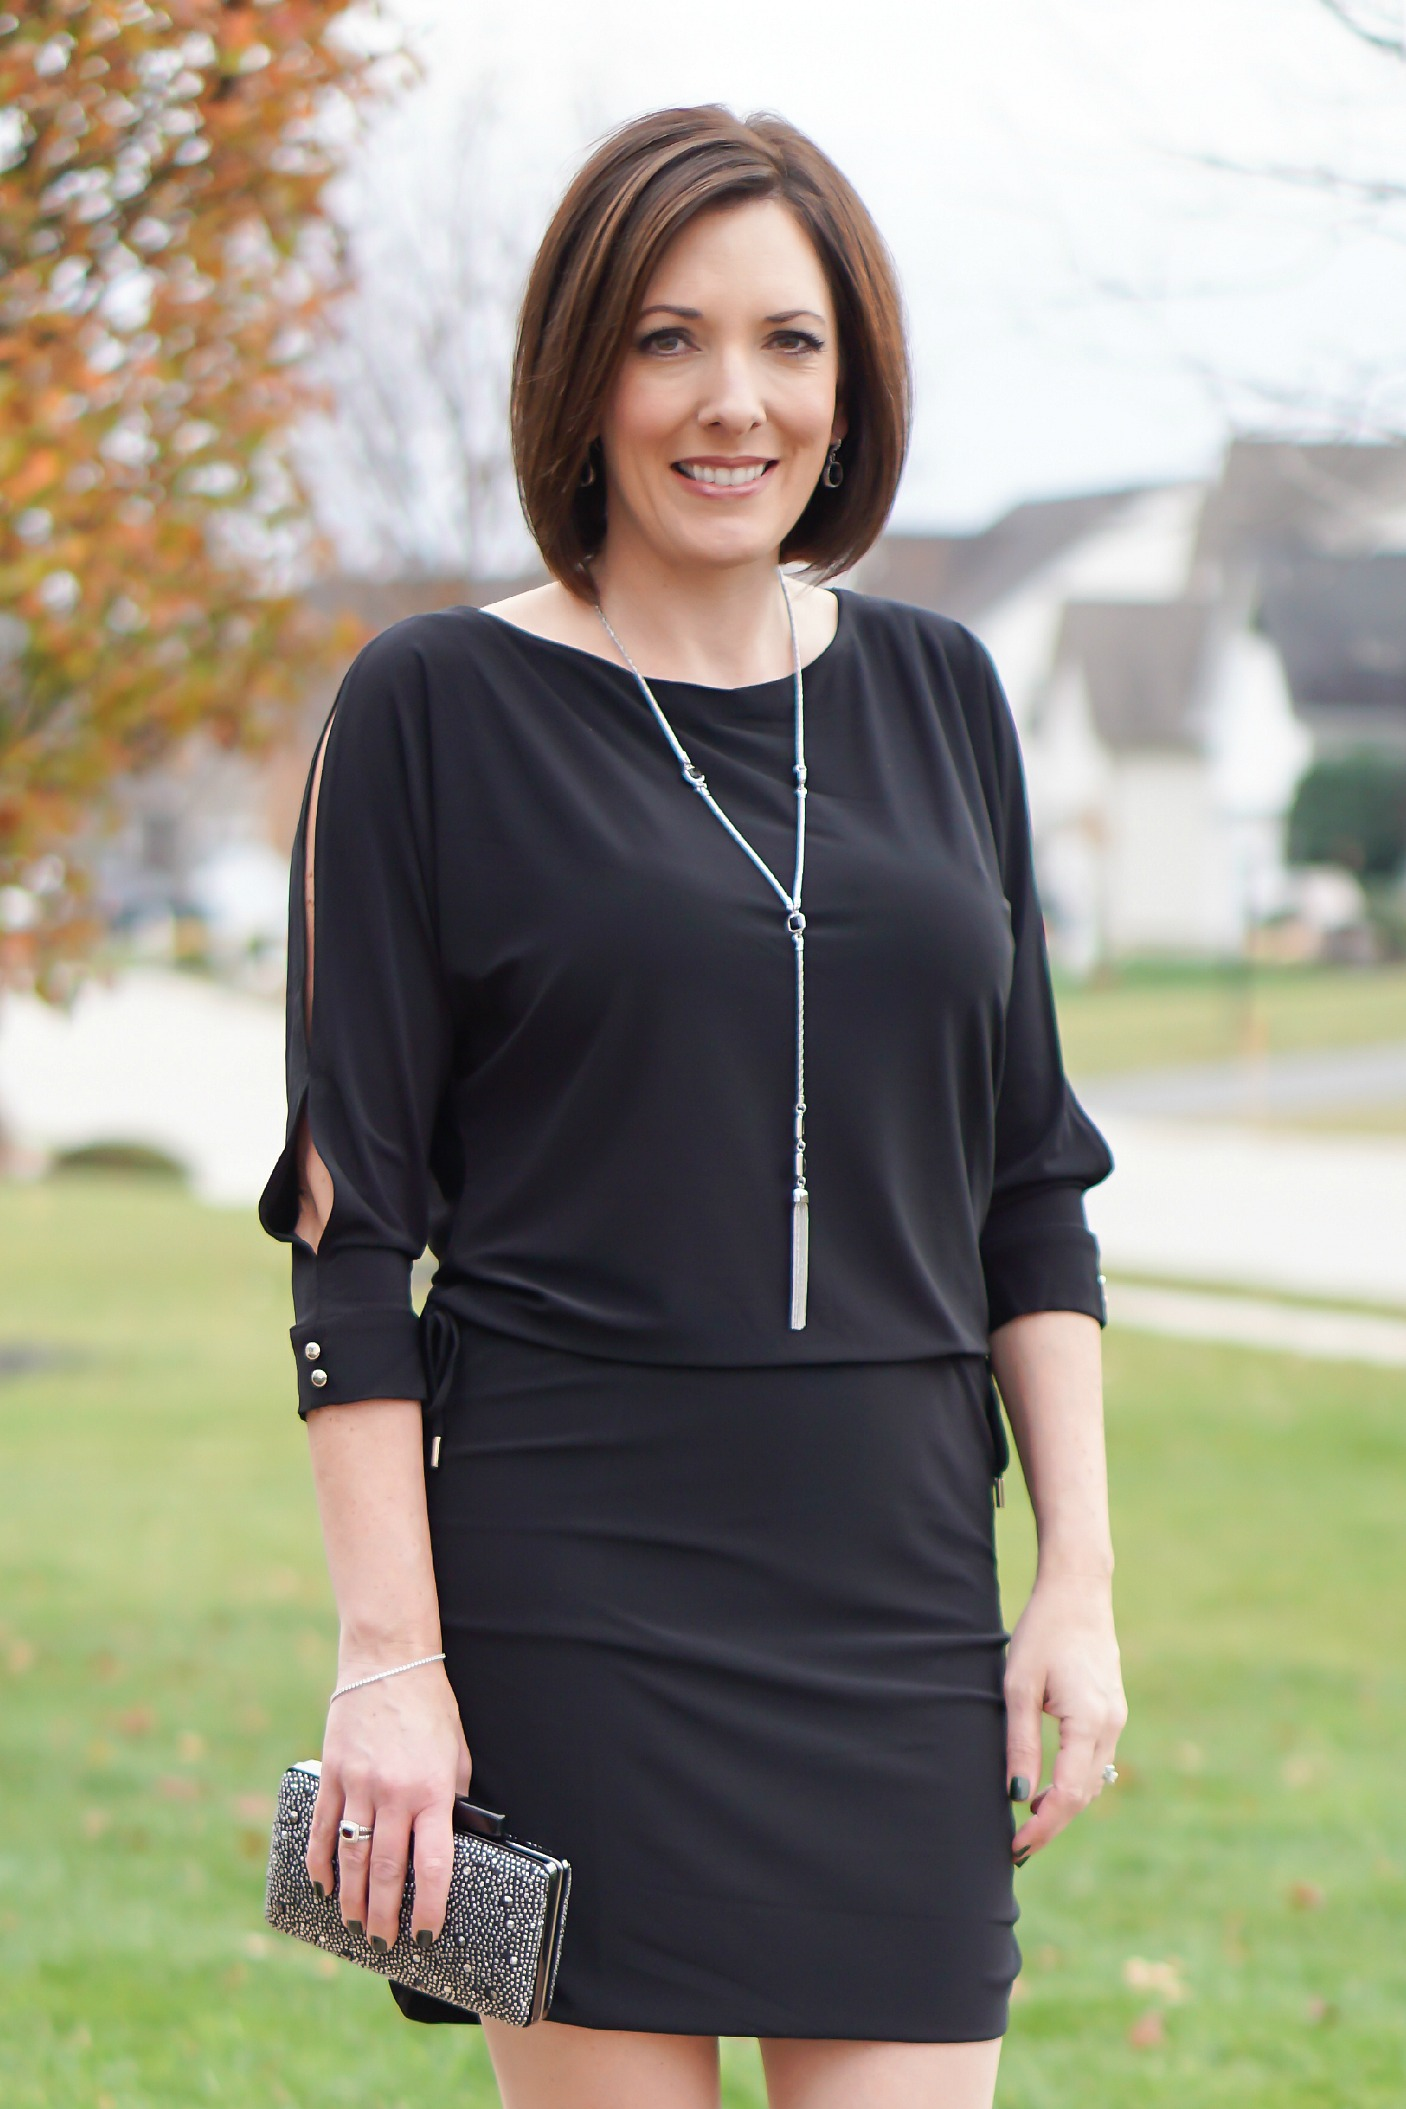 What to Wear to an Office Christmas Party: LBD with fun accessories and black suede pumps